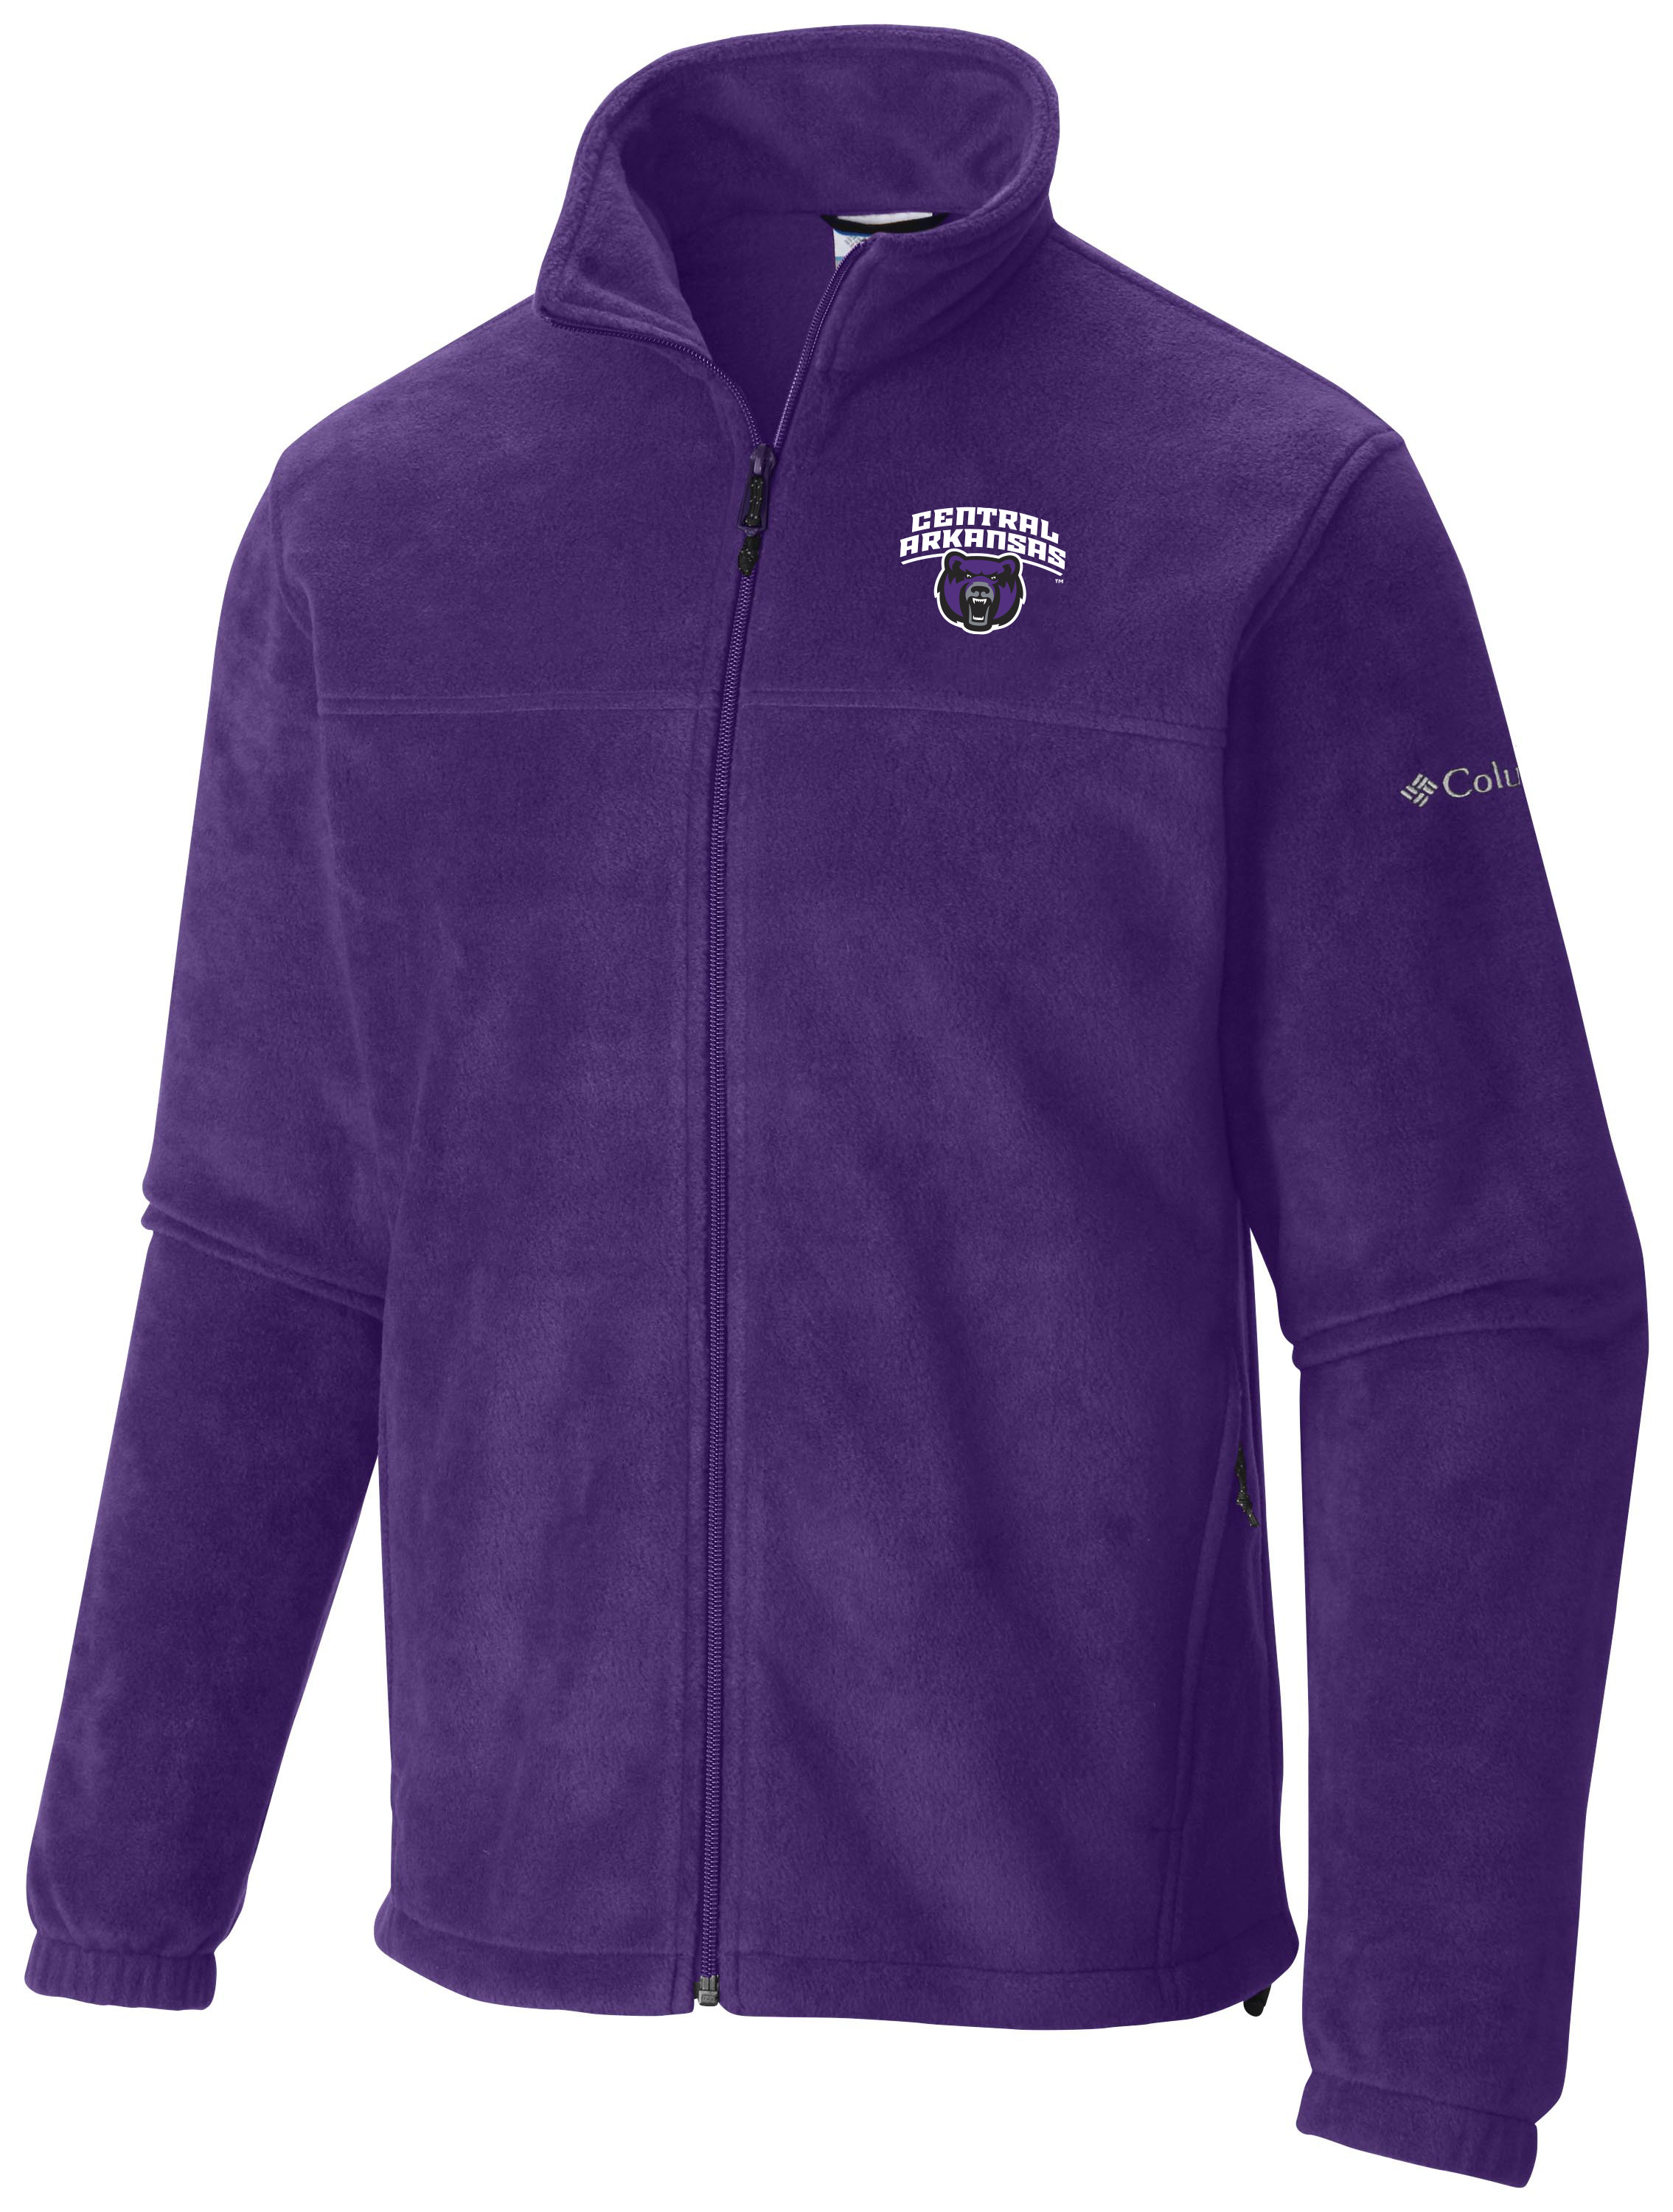 Central Arkansas Flanker Full Zip Jacket